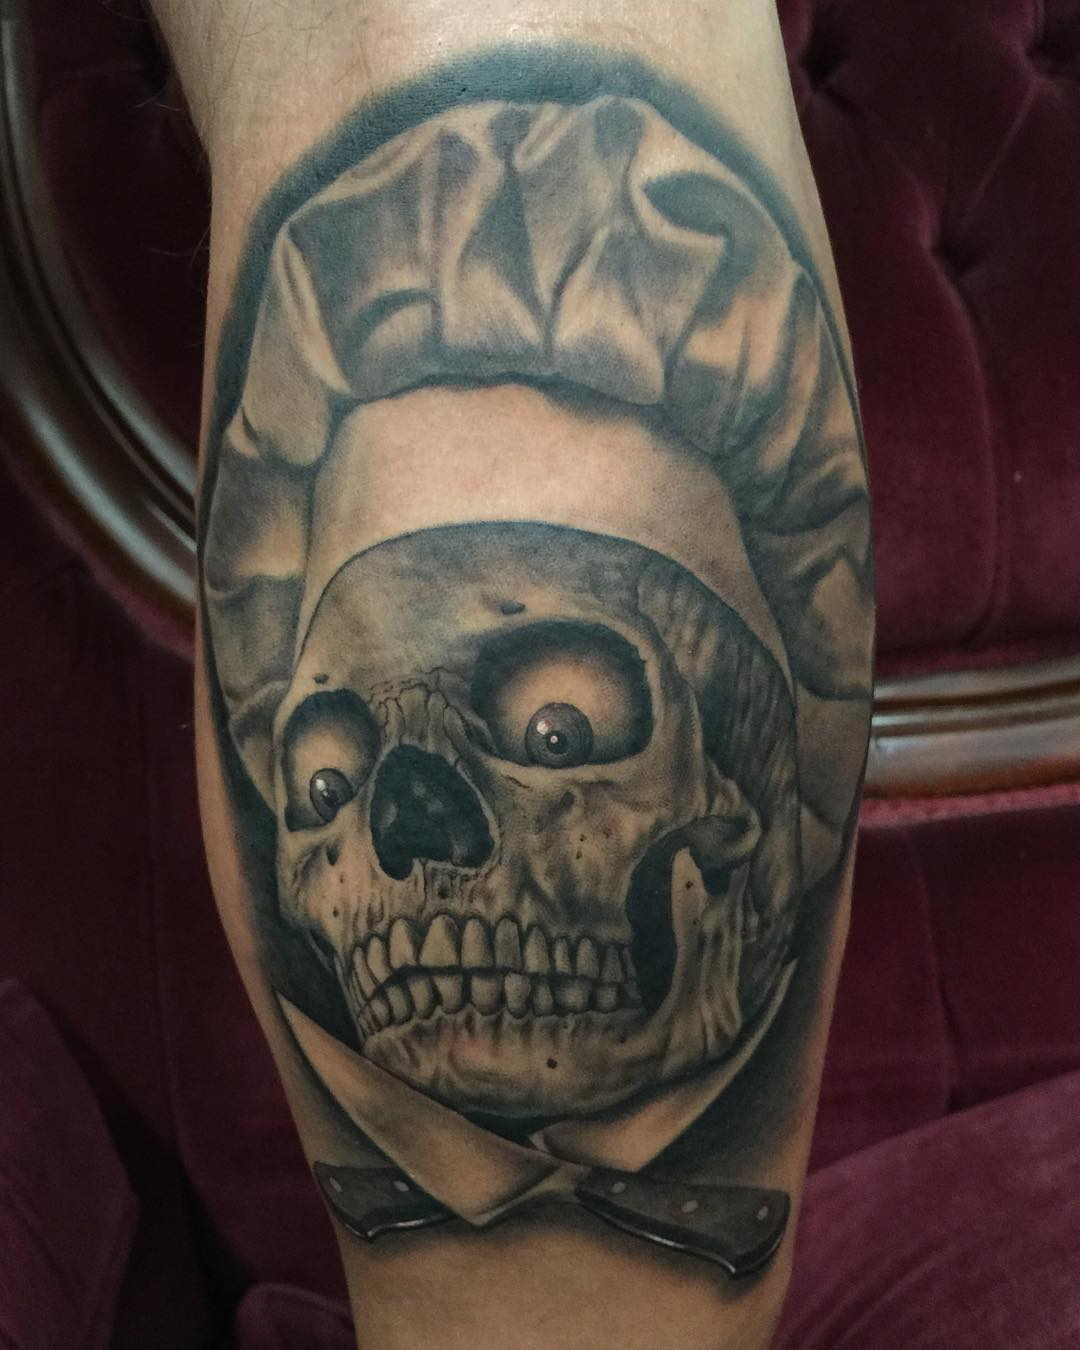 the skull in chef's hat with crazy eyes and two knives